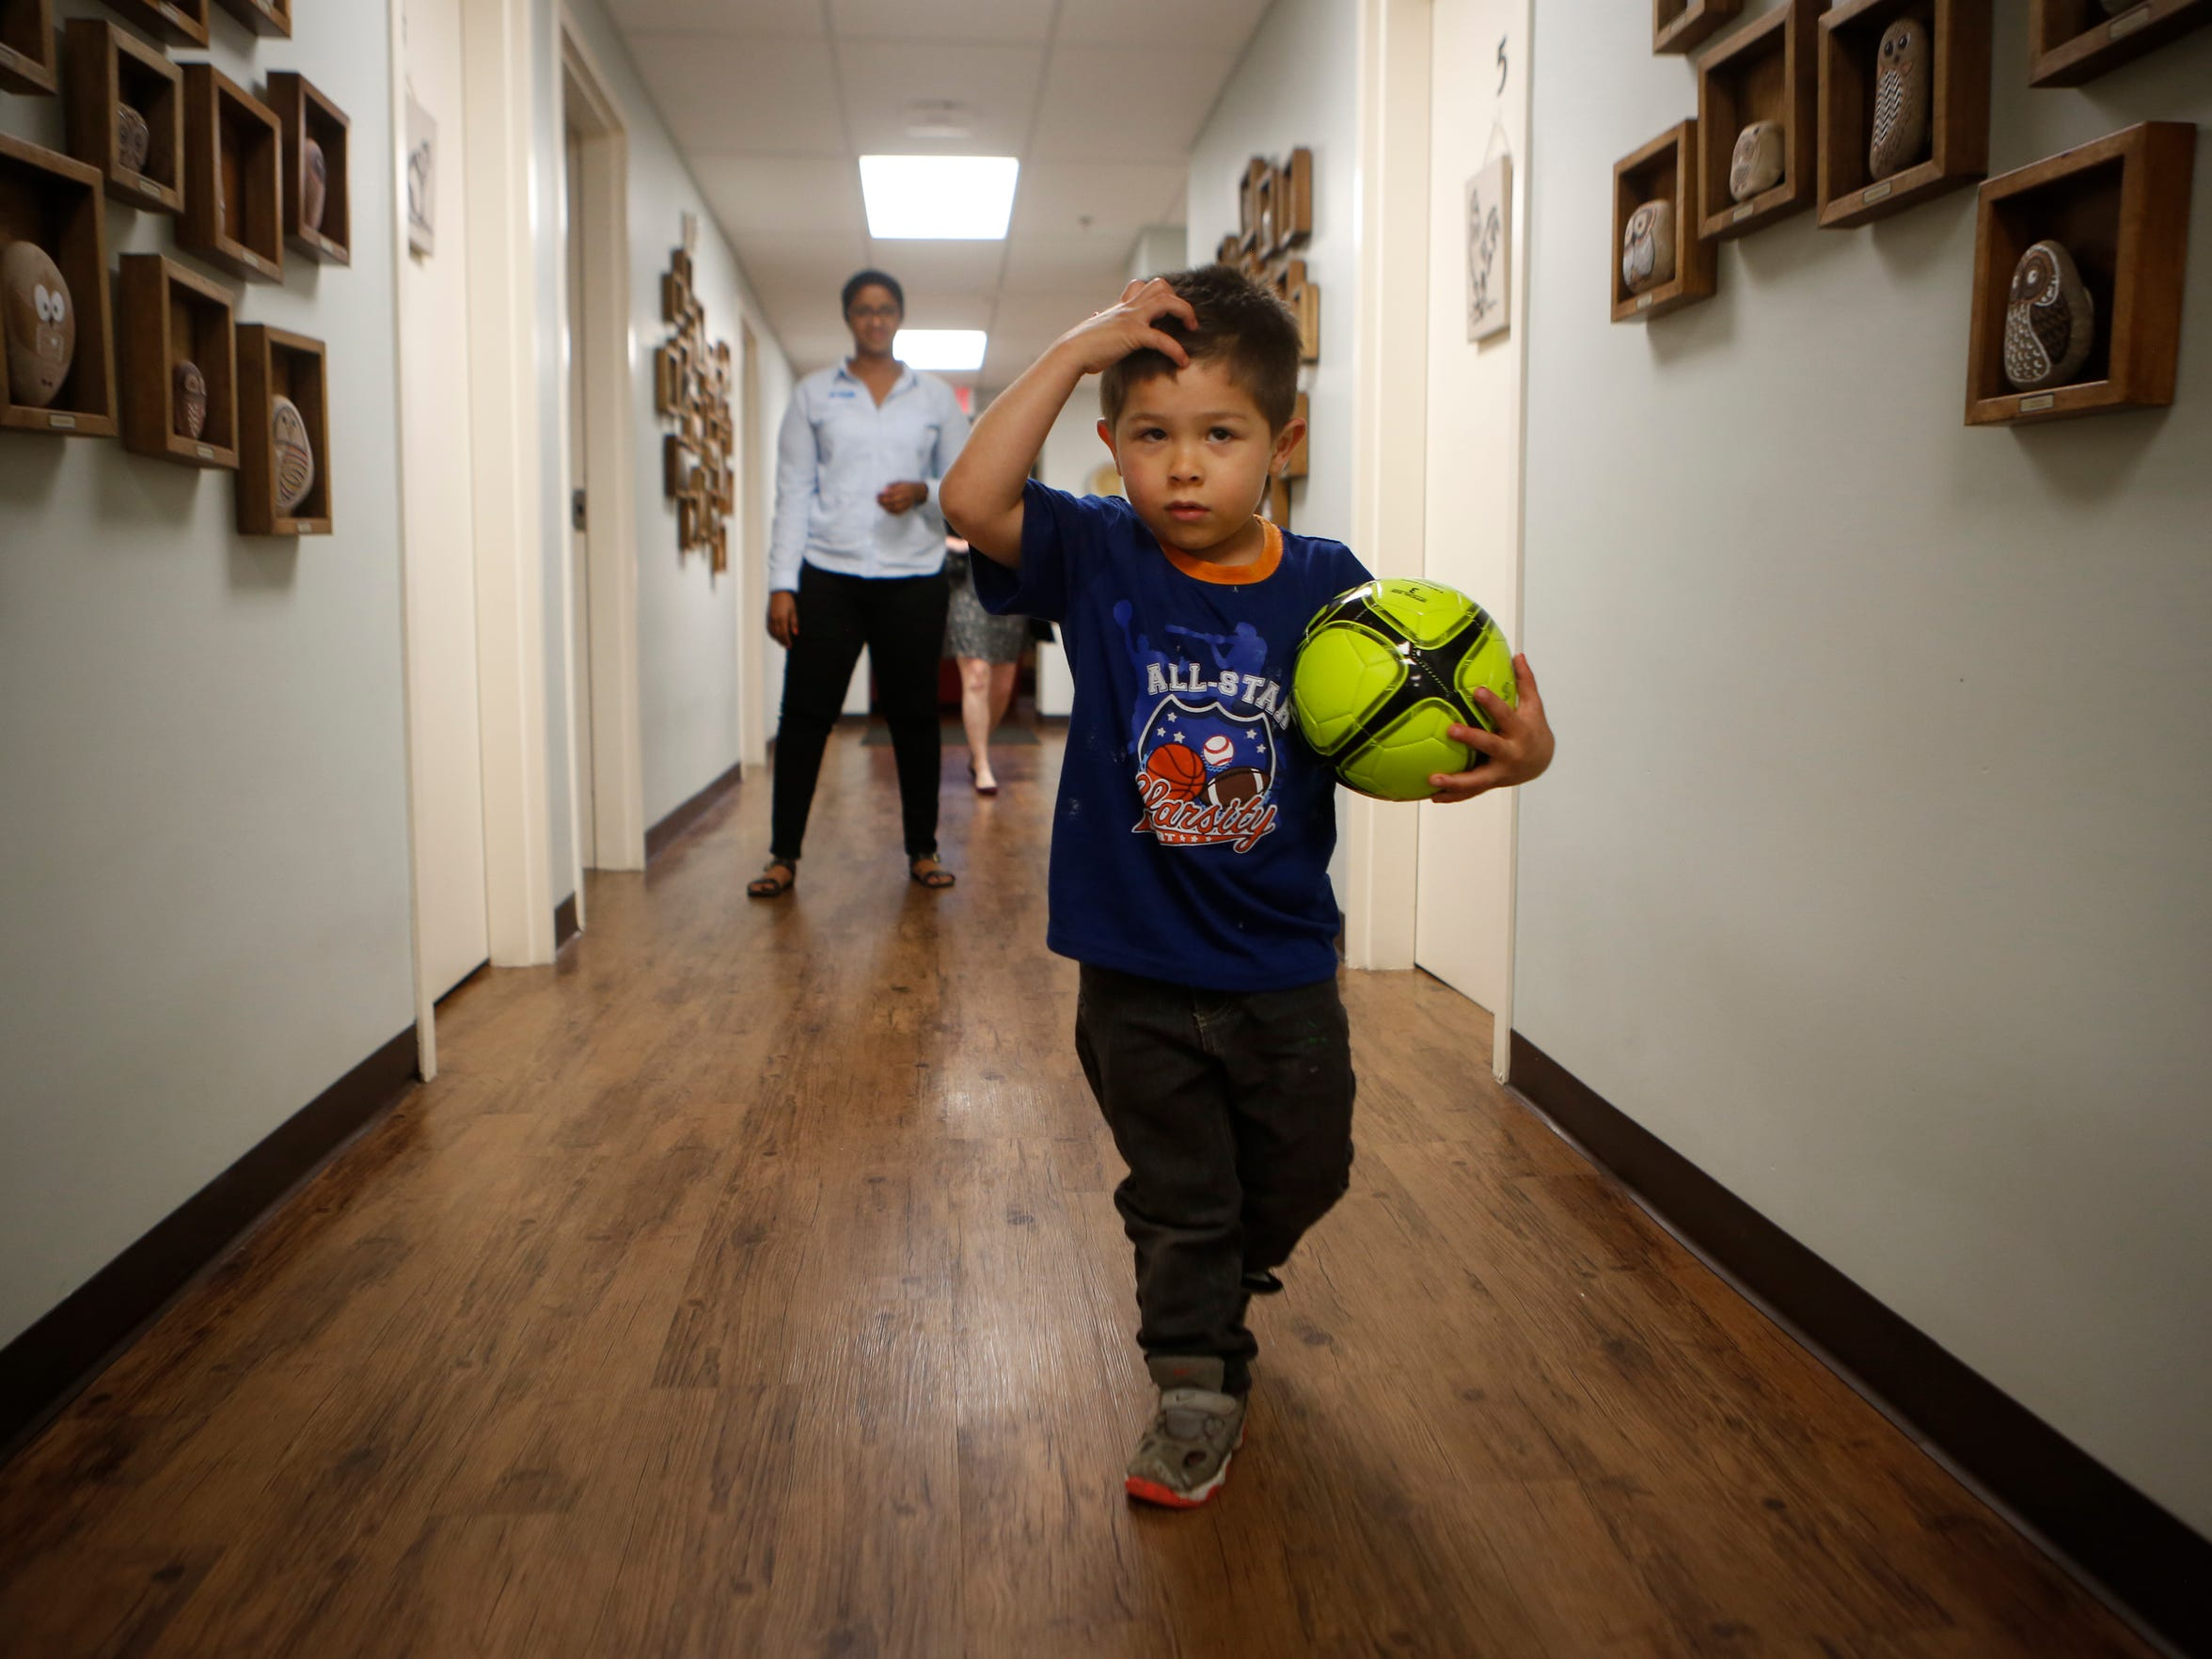 Kymbal Pruett's son Miguel played ball in the hallway of Volunteers of America's Freedom House with Marian Ahmed, the clinical child therapist at the center.  May 10, 2016.